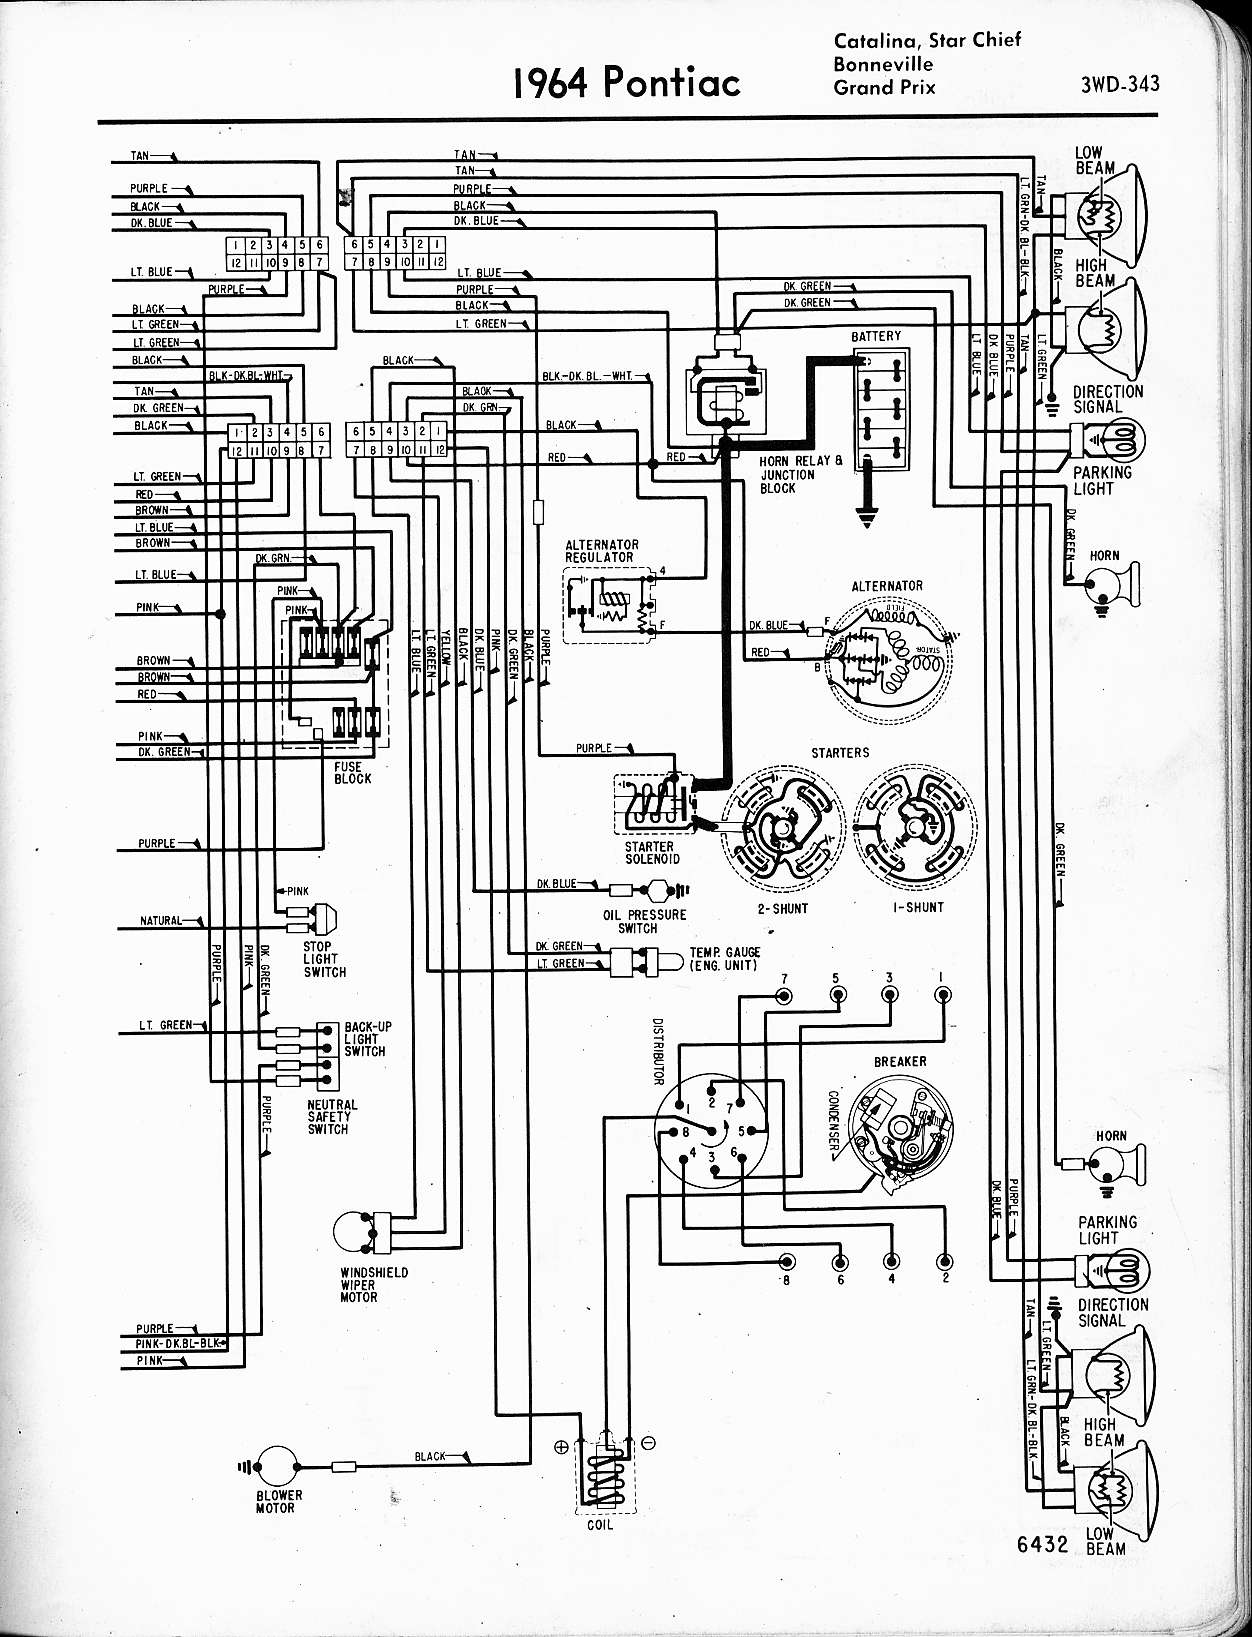 hight resolution of wallace racing wiring diagrams1964 catalina star chief bonneville grand prix right page